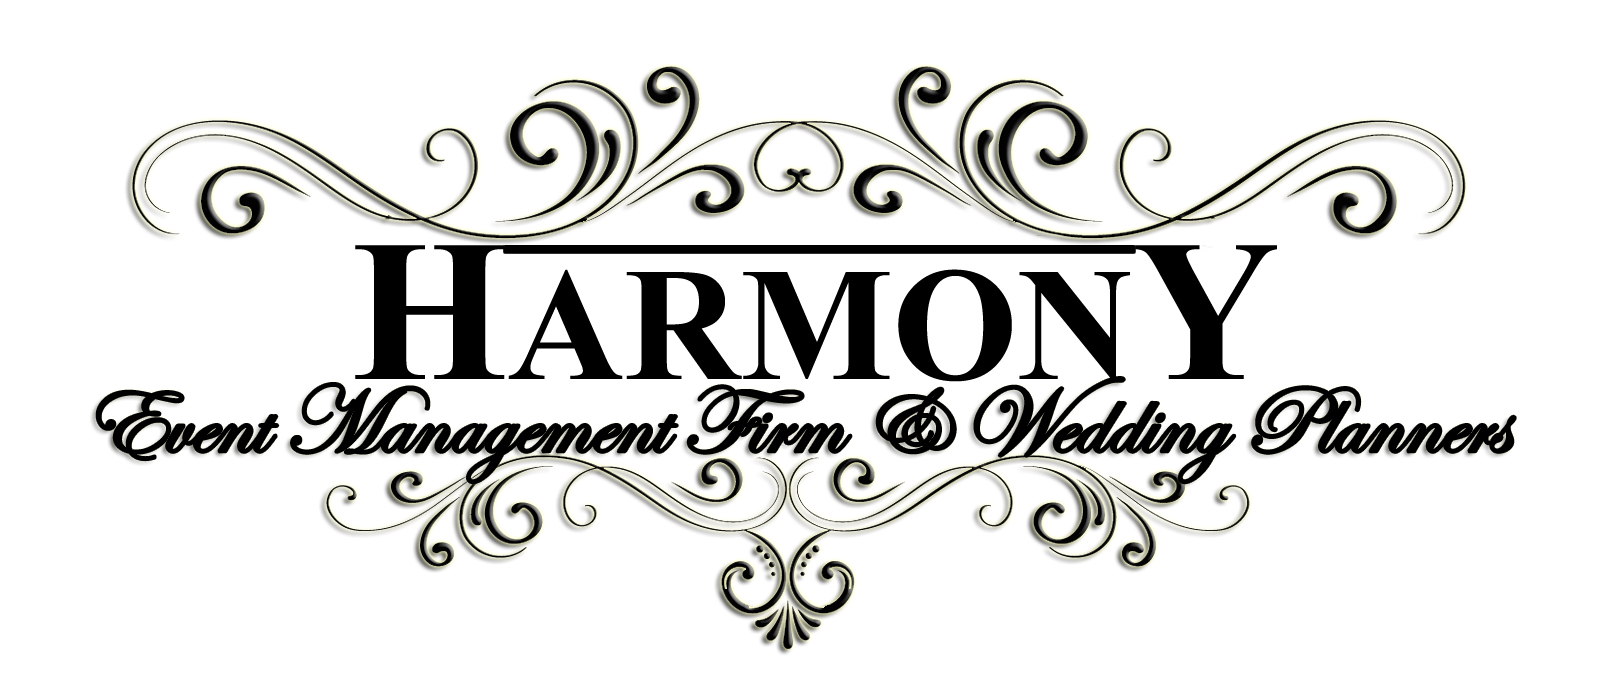 Harmony Event Management Firm & Wedd